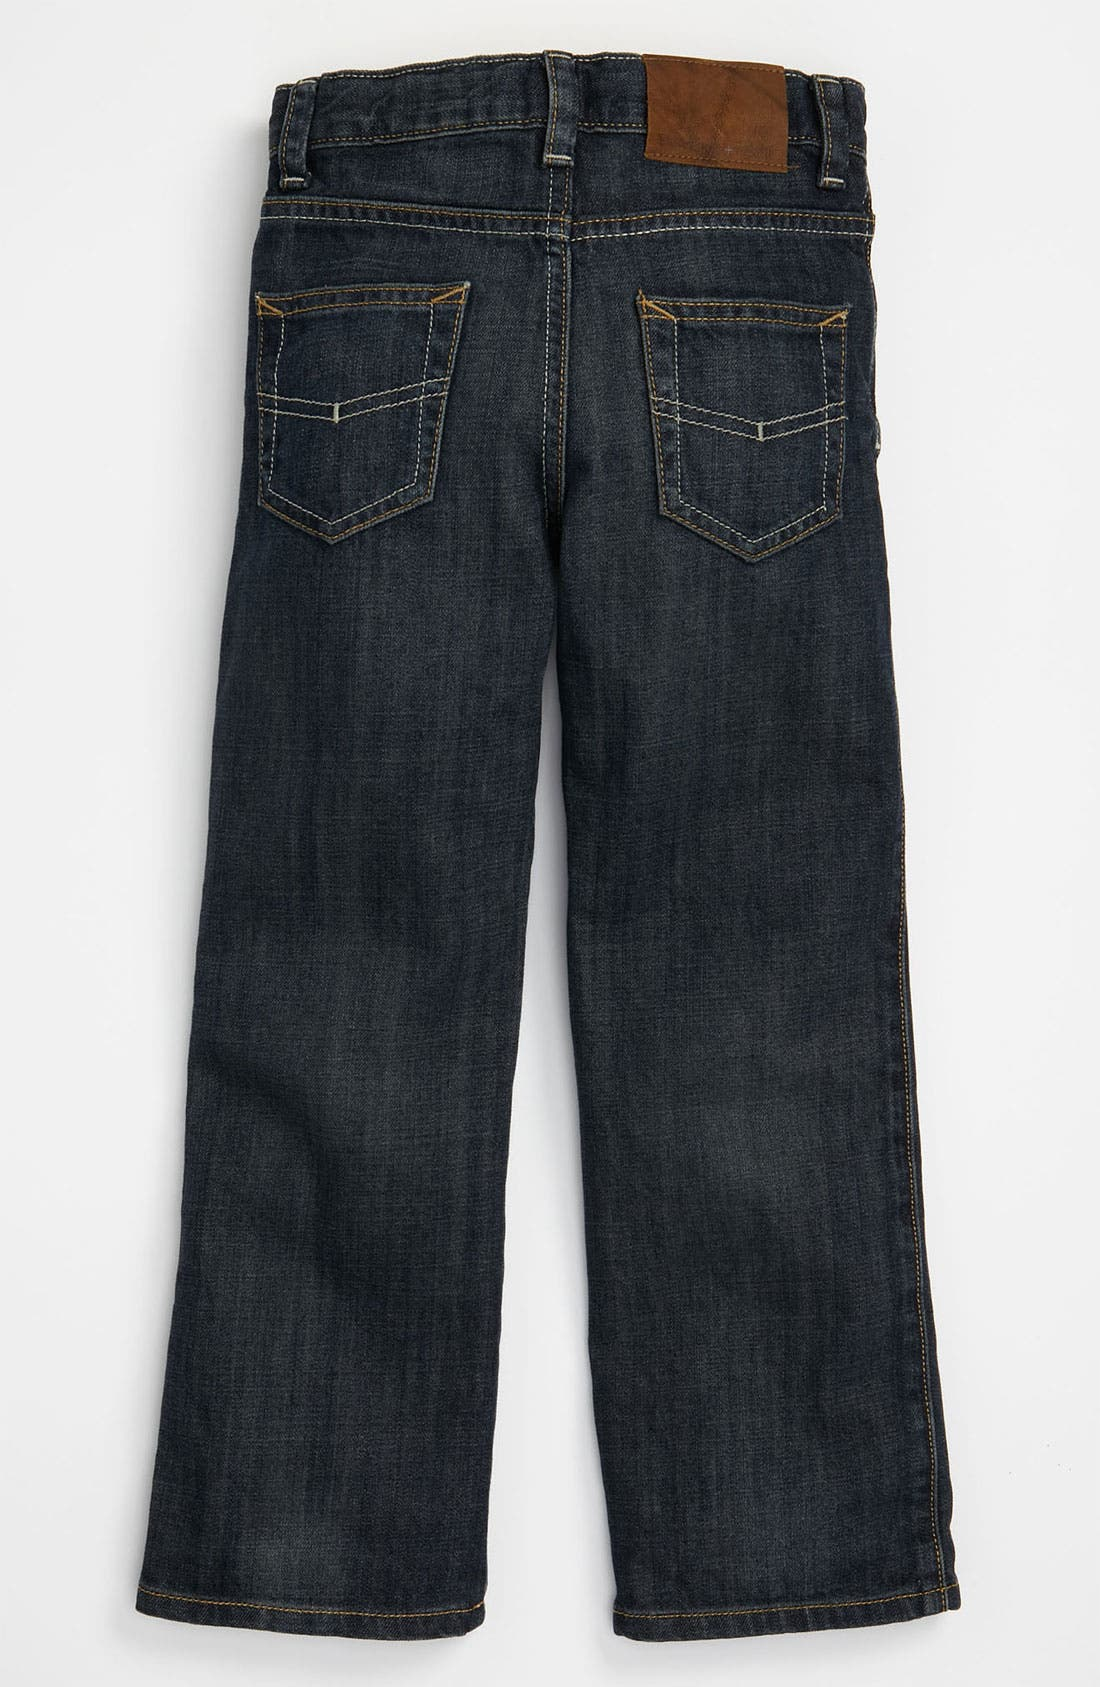 Alternate Image 1 Selected - Tucker + Tate 'Tucker' Jeans (Little Boys)